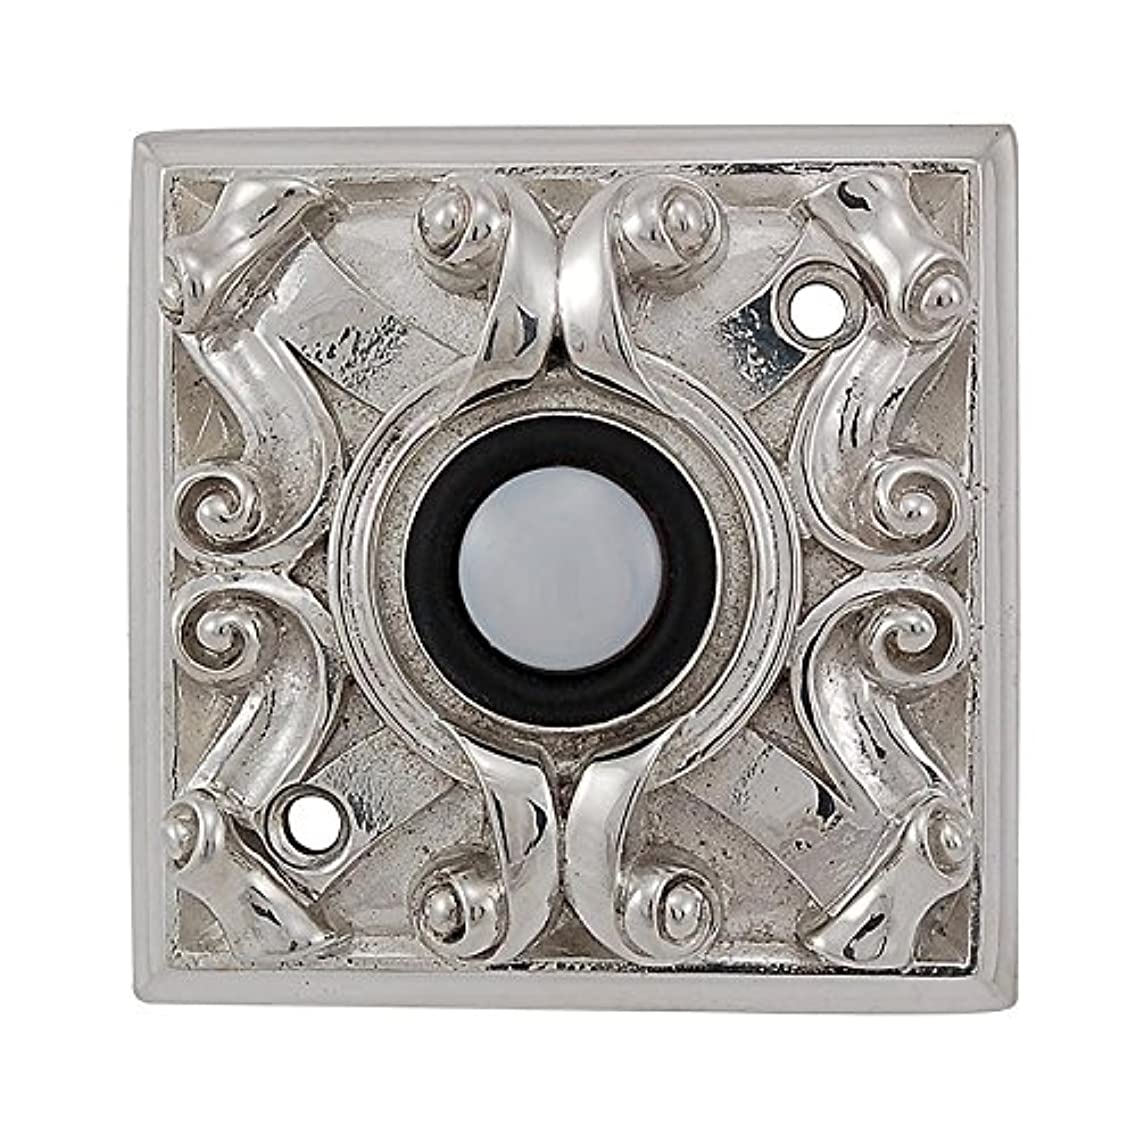 Vicenza Designs D4008 Sforza Square Style Doorbell, Polished Nickel